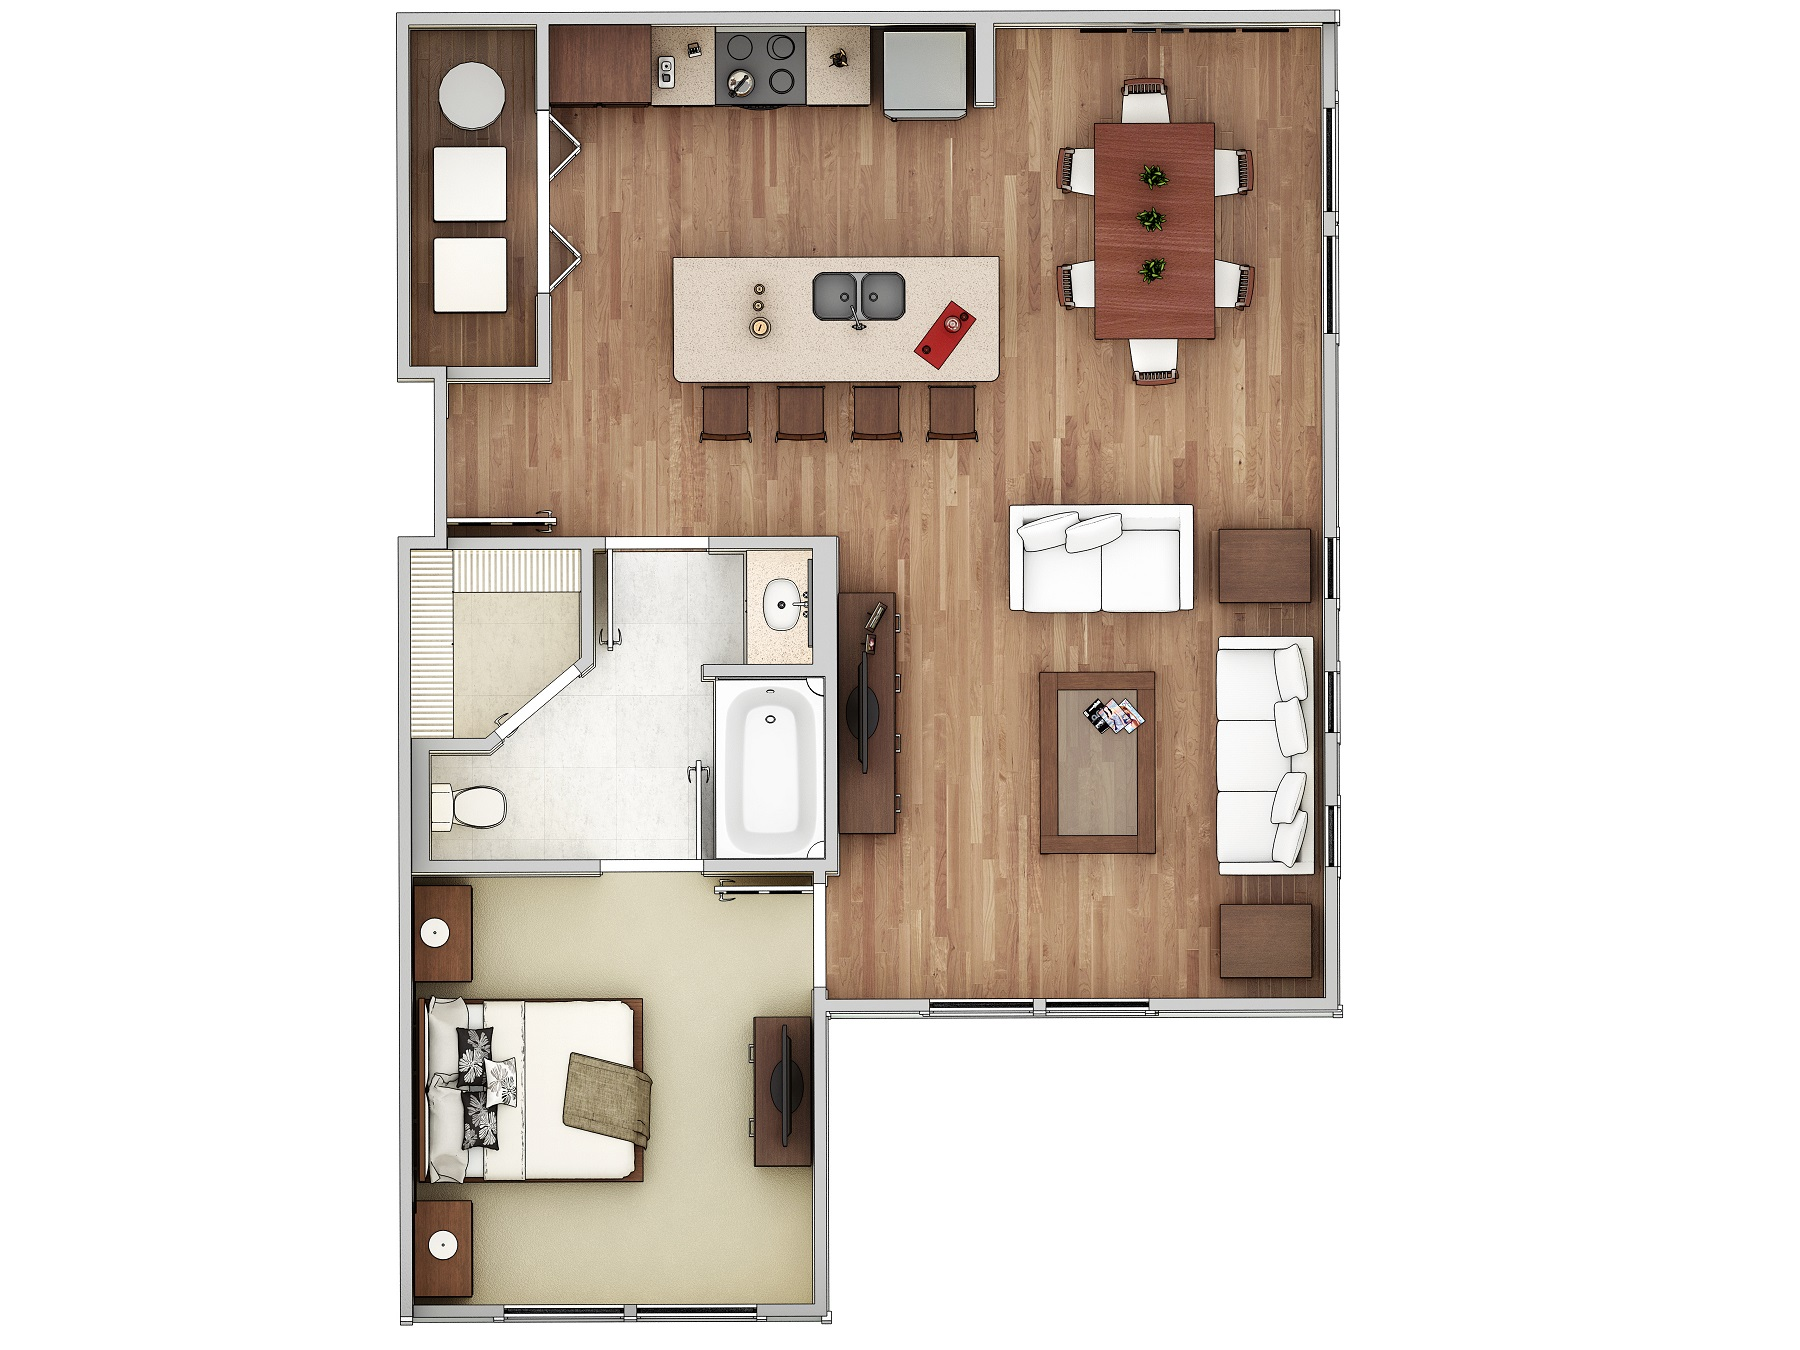 One bedroom, one bath home at Charleston on 66th in Largo, FL